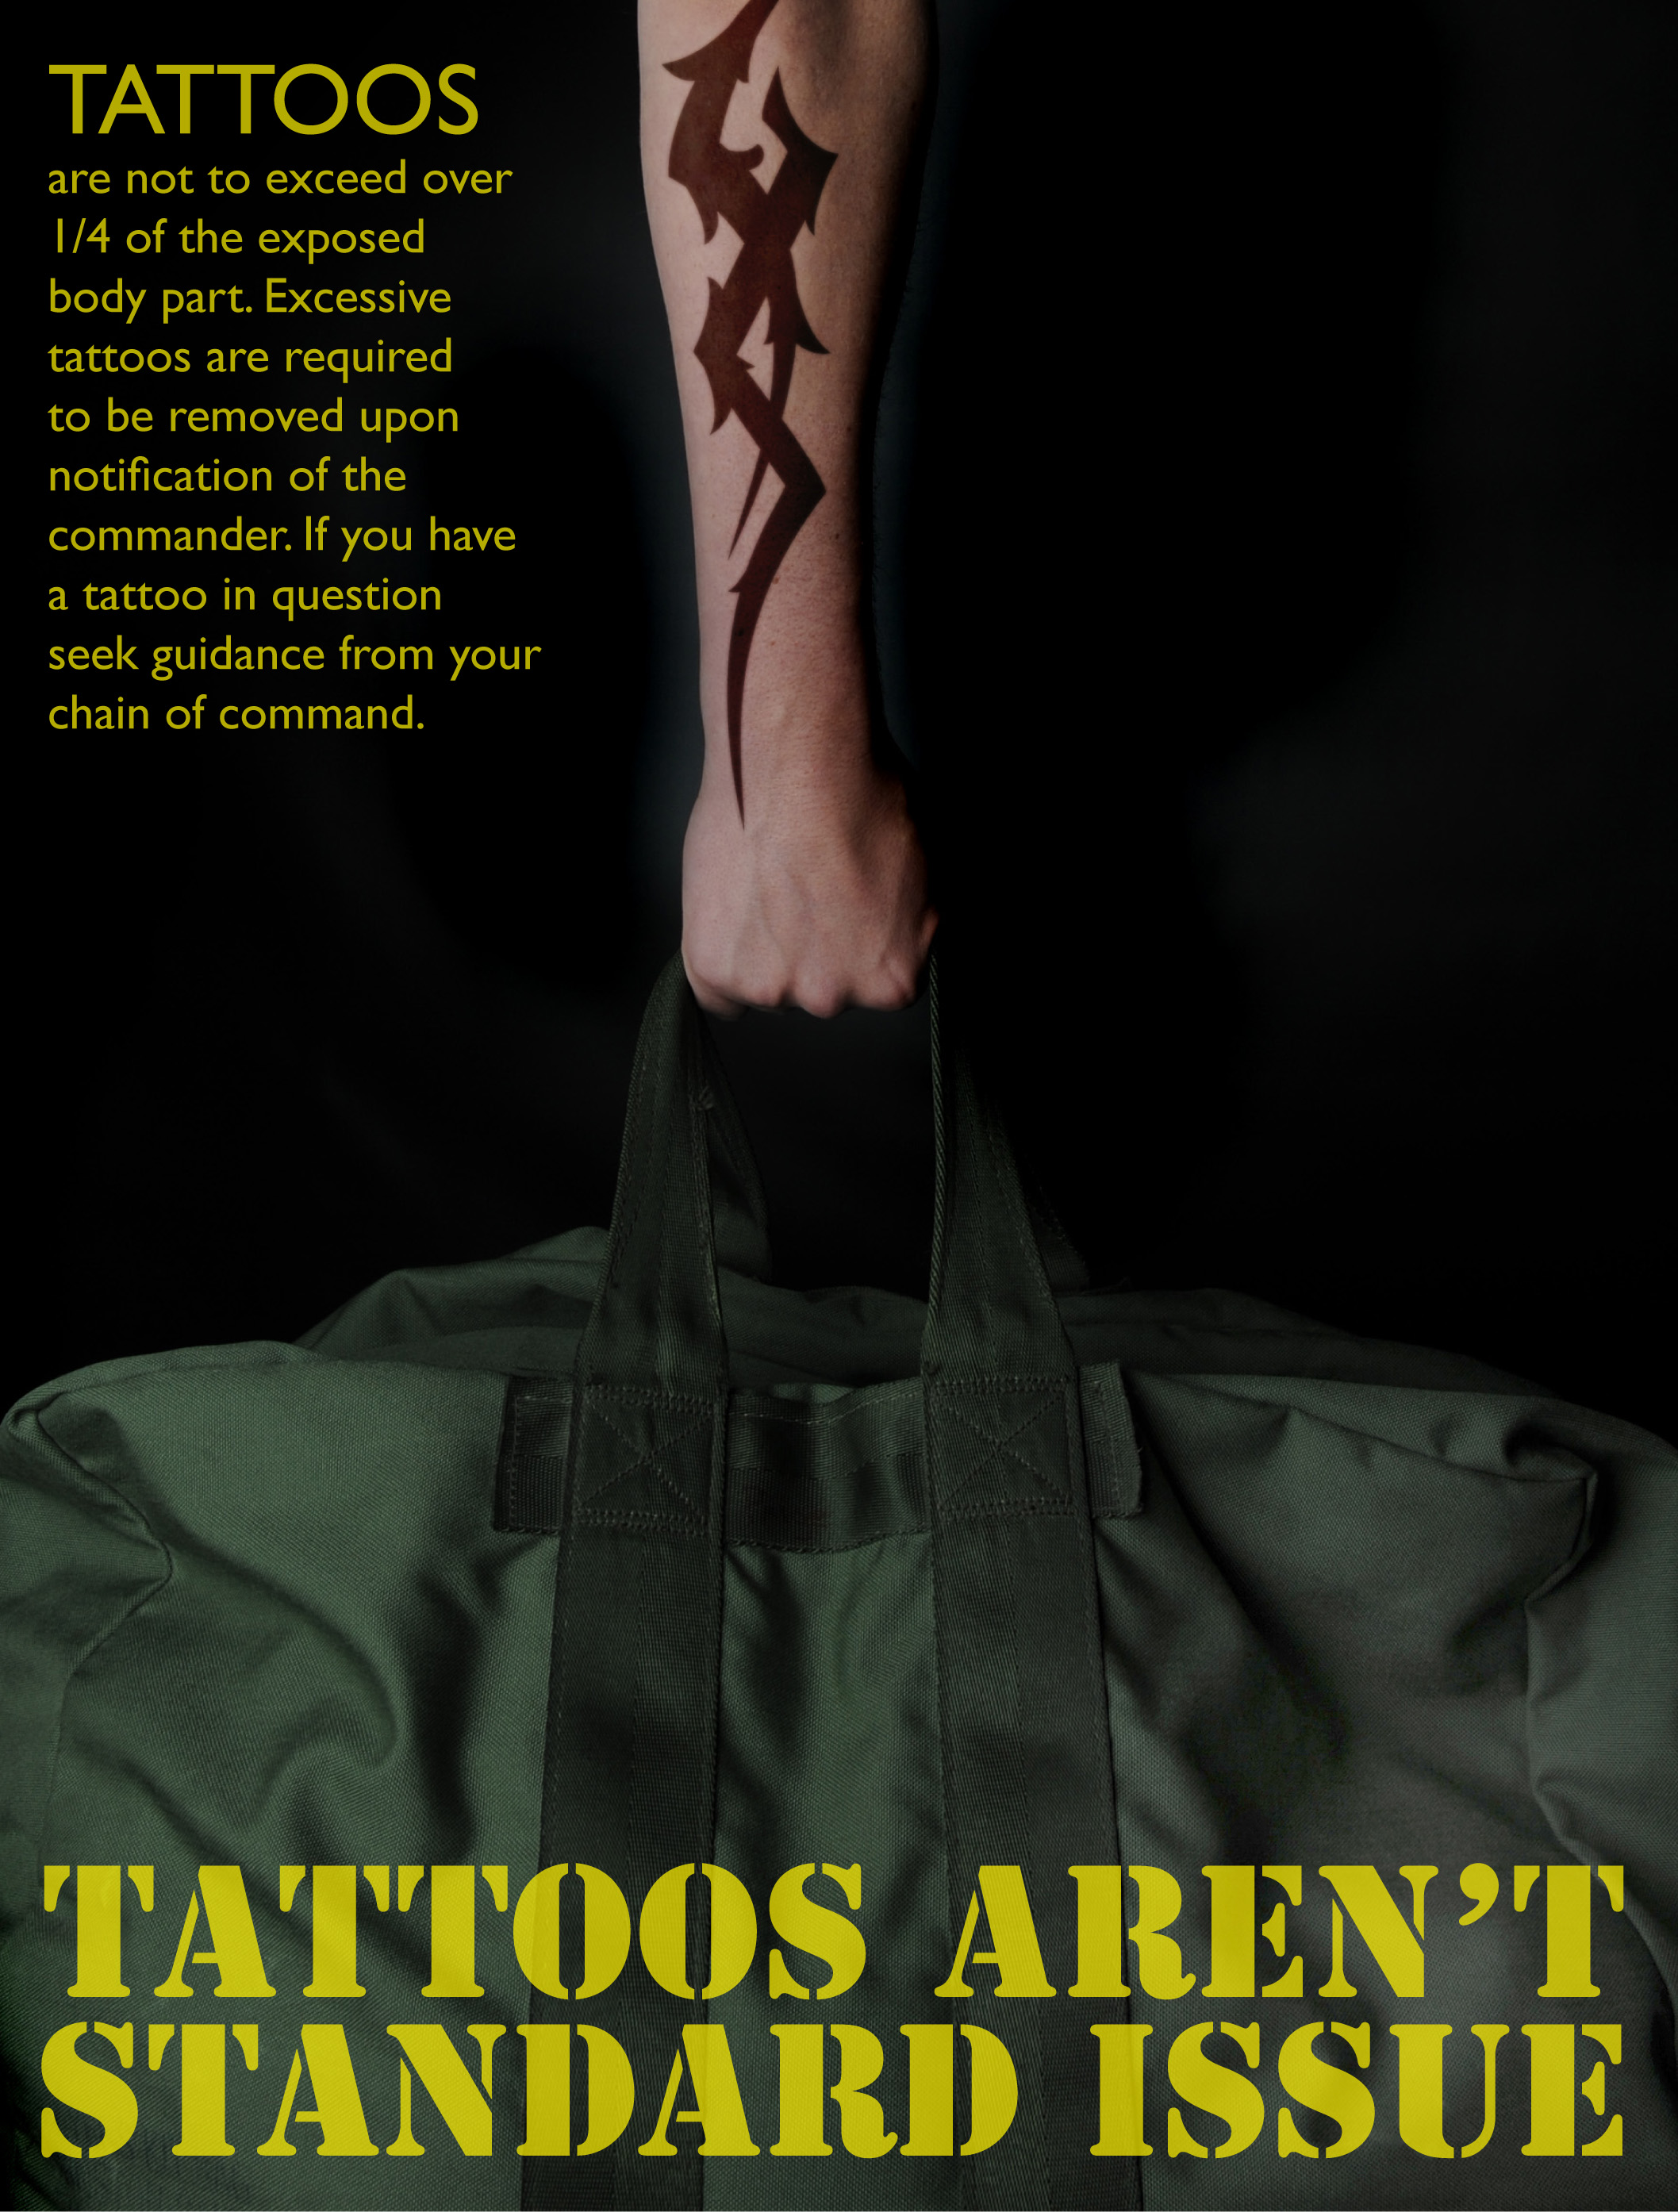 laserless tattoo removal guide pdf download